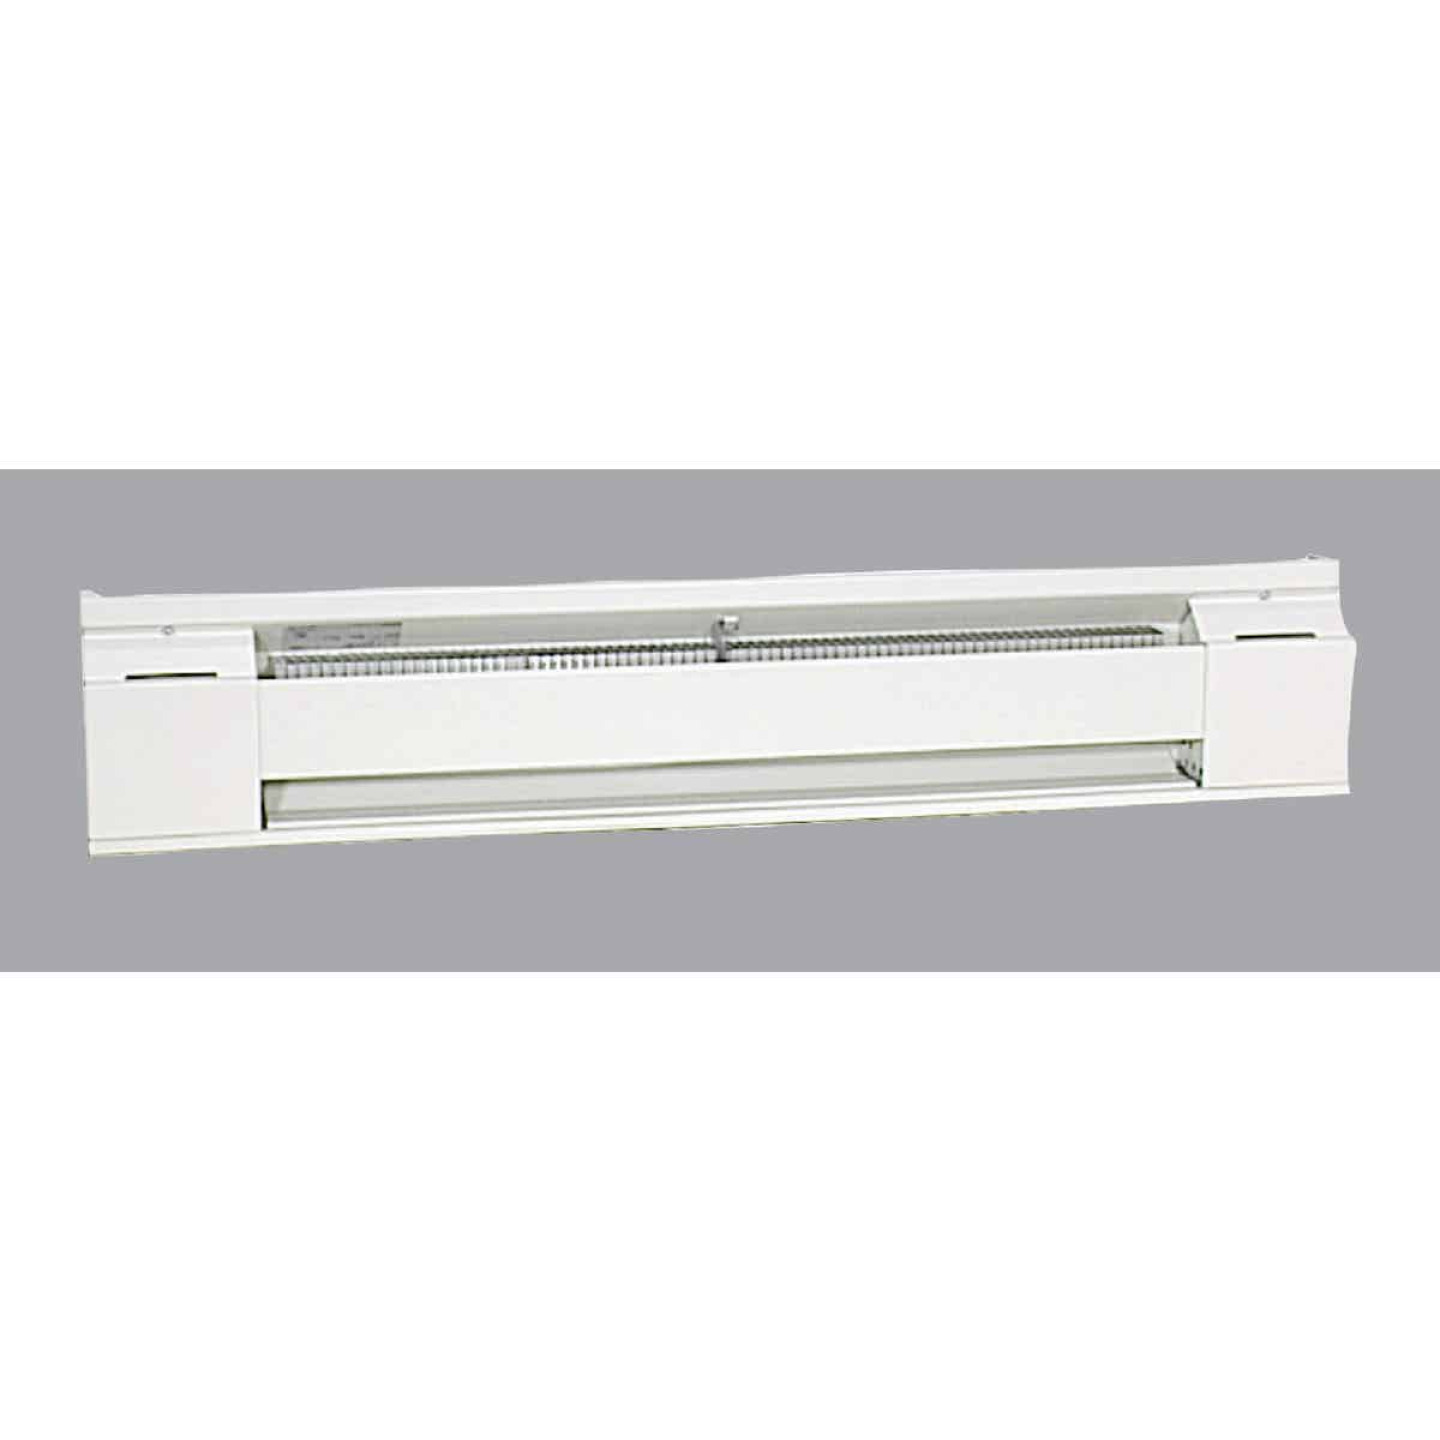 Fahrenheat 36 In. 750-Watt 240-Volt Electric Baseboard Heater, Northern White Image 1